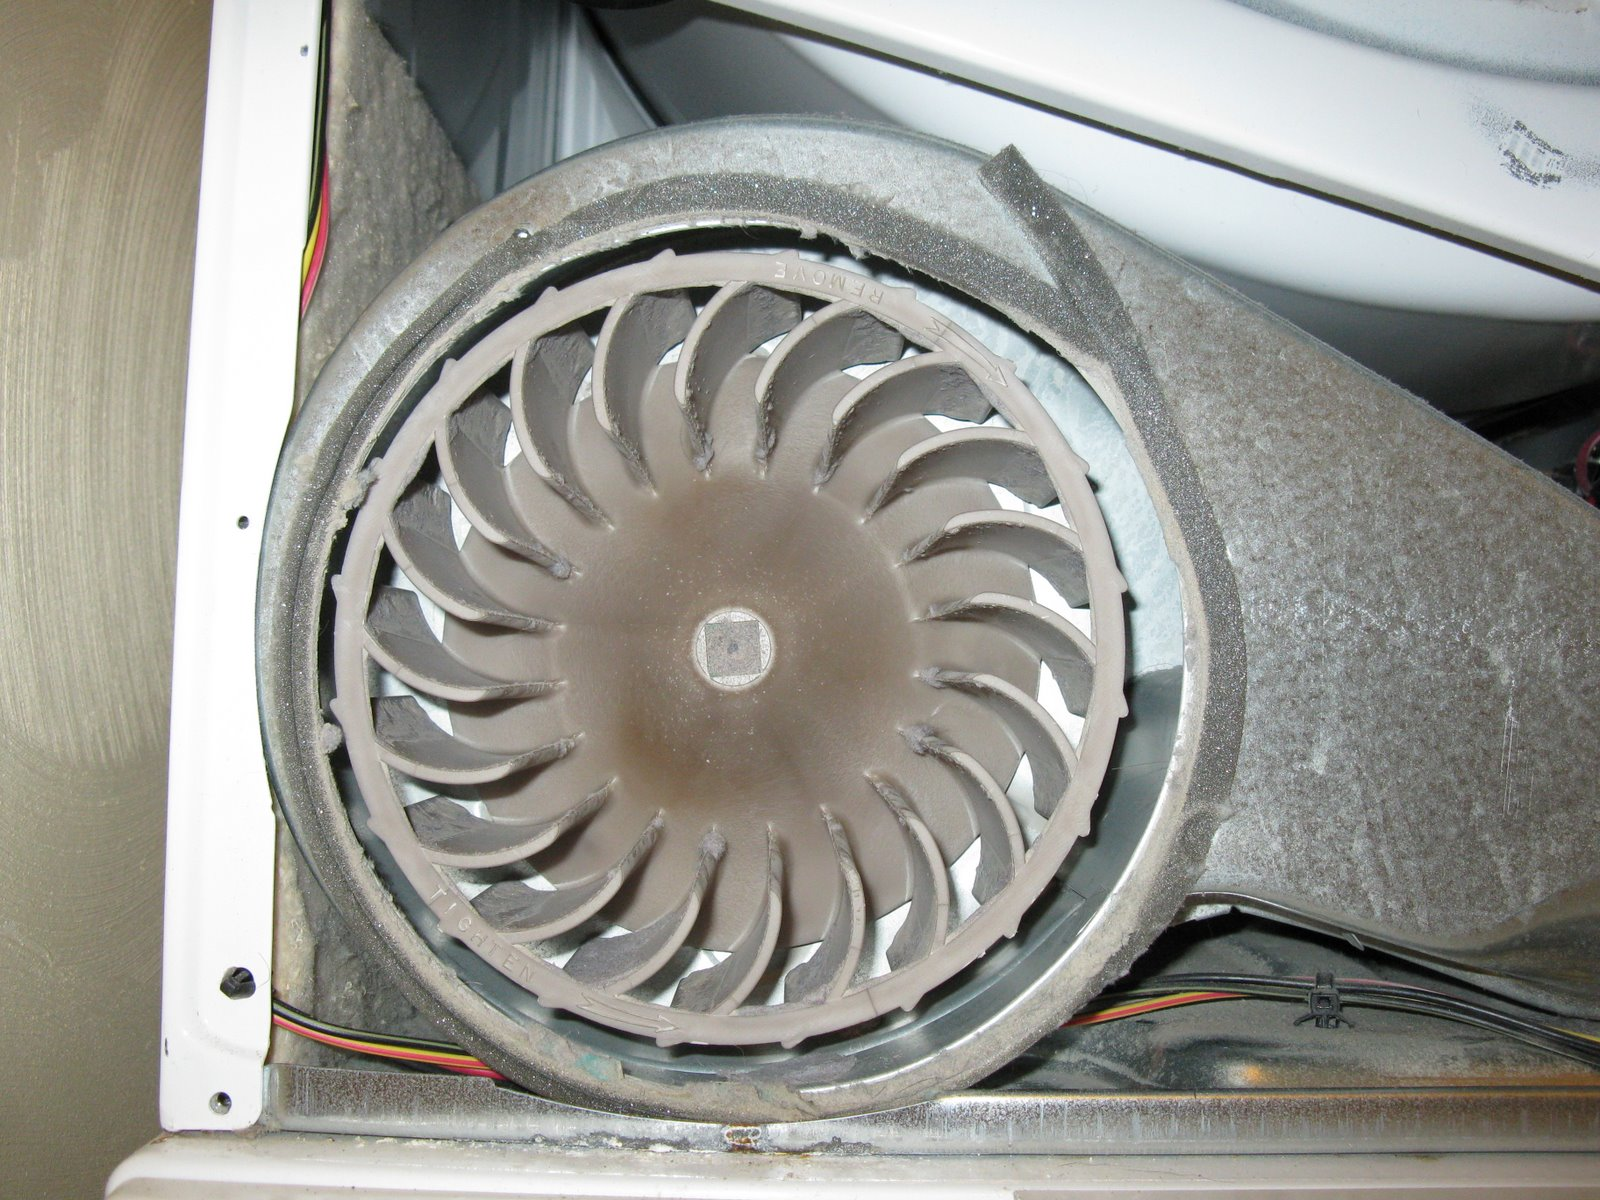 Bathroom And Dryer Duct Cleaning A Concord Carpenter - Clean bathroom fan